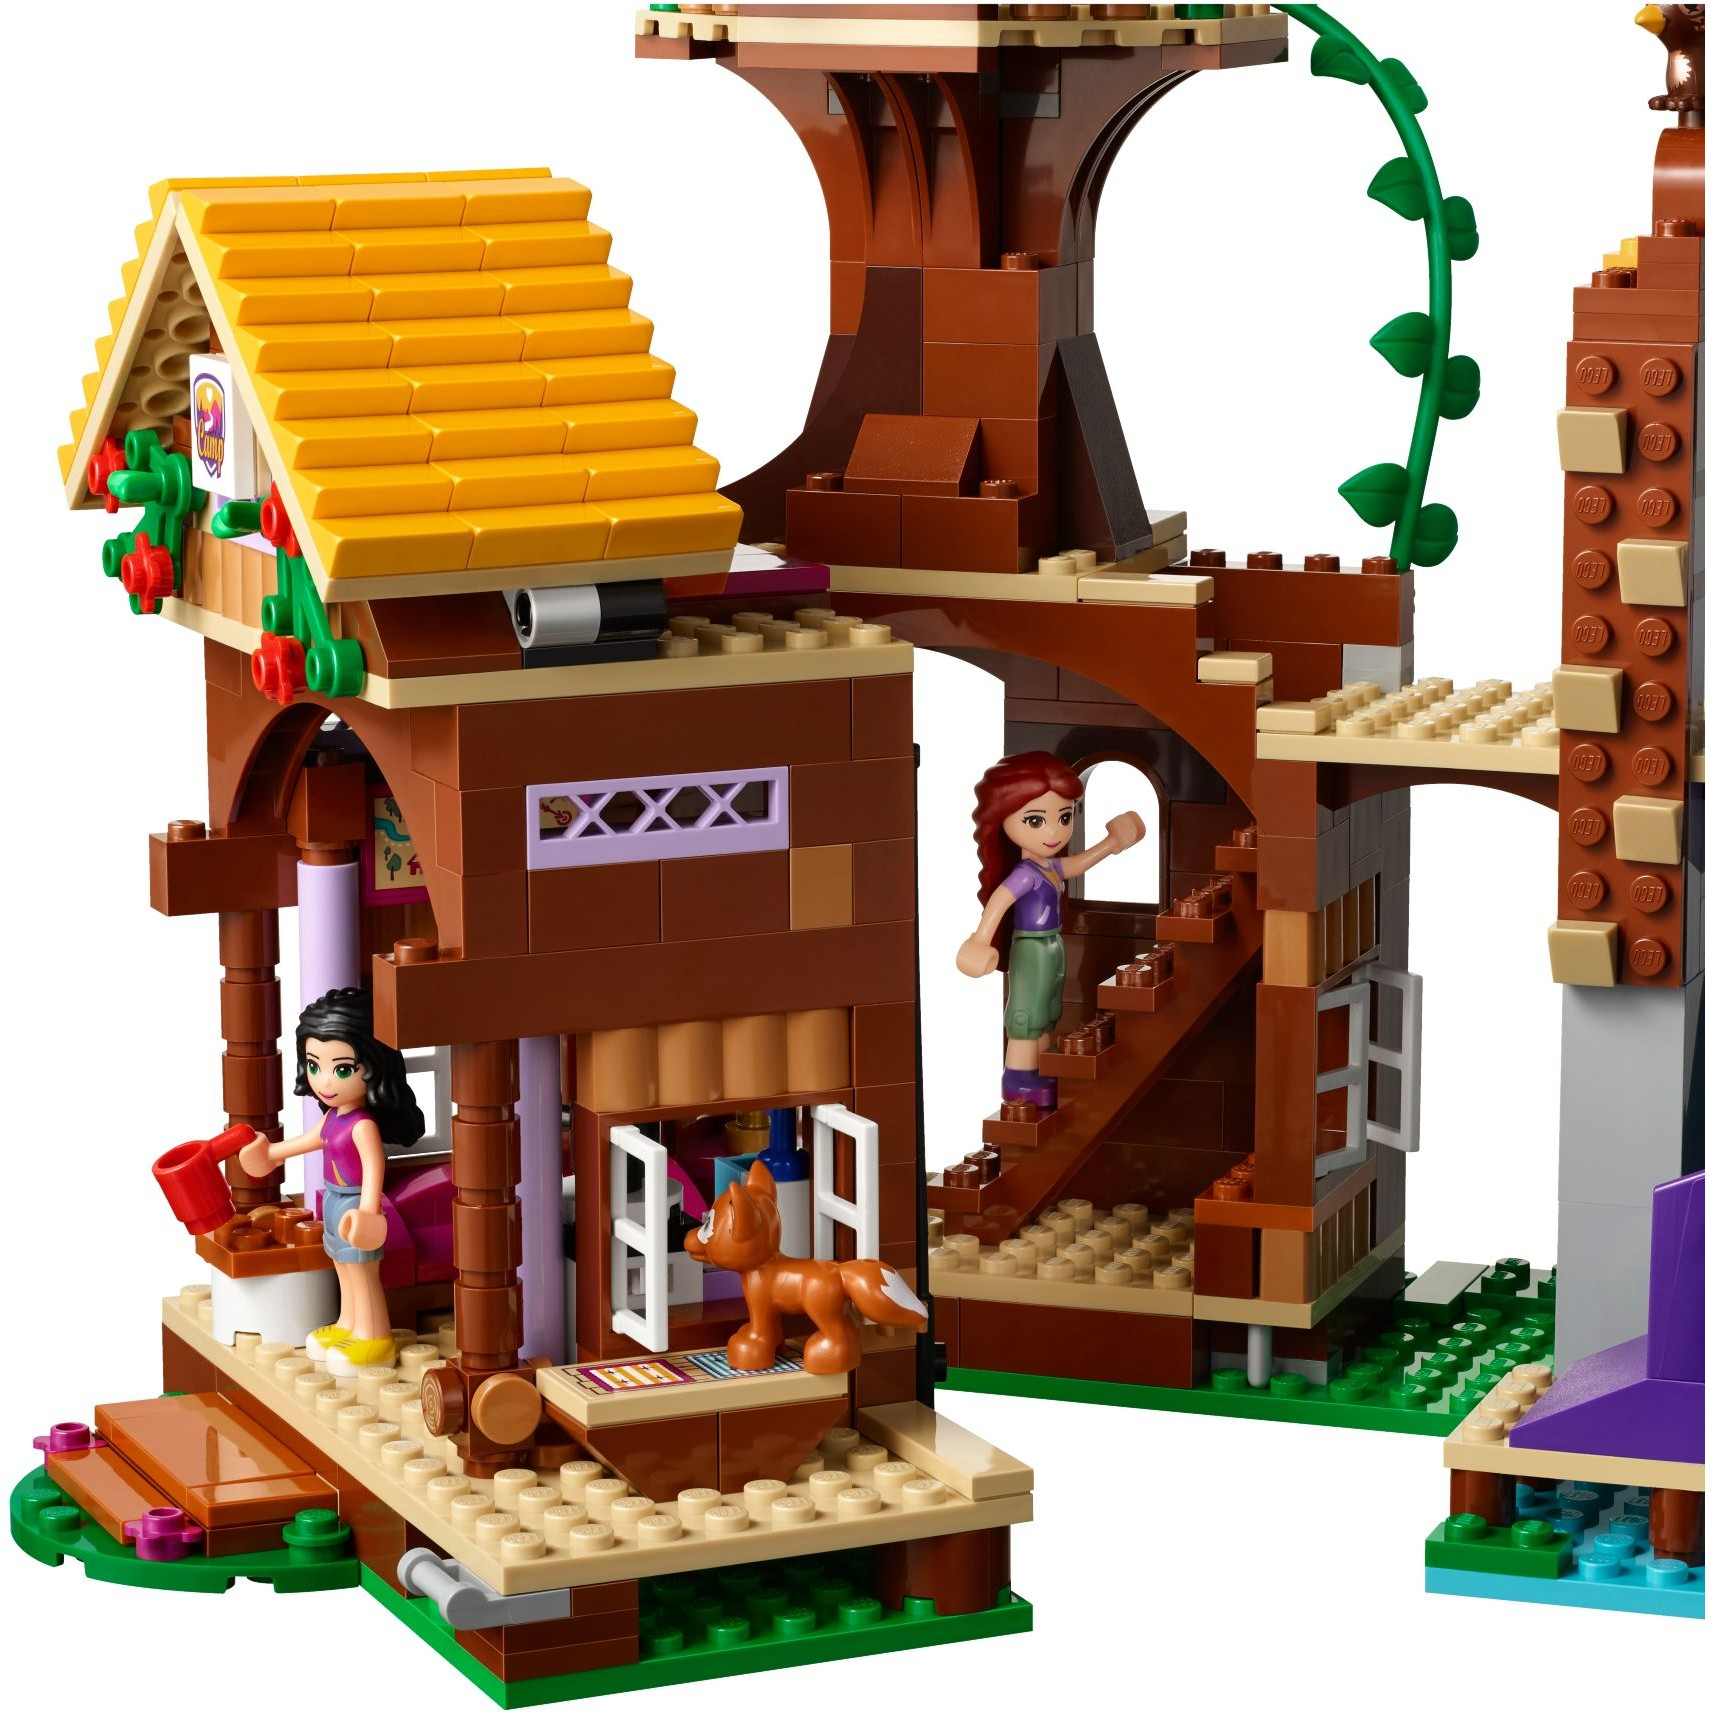 Lego Camp 41122 Adventure Tree House 0P8knXwO